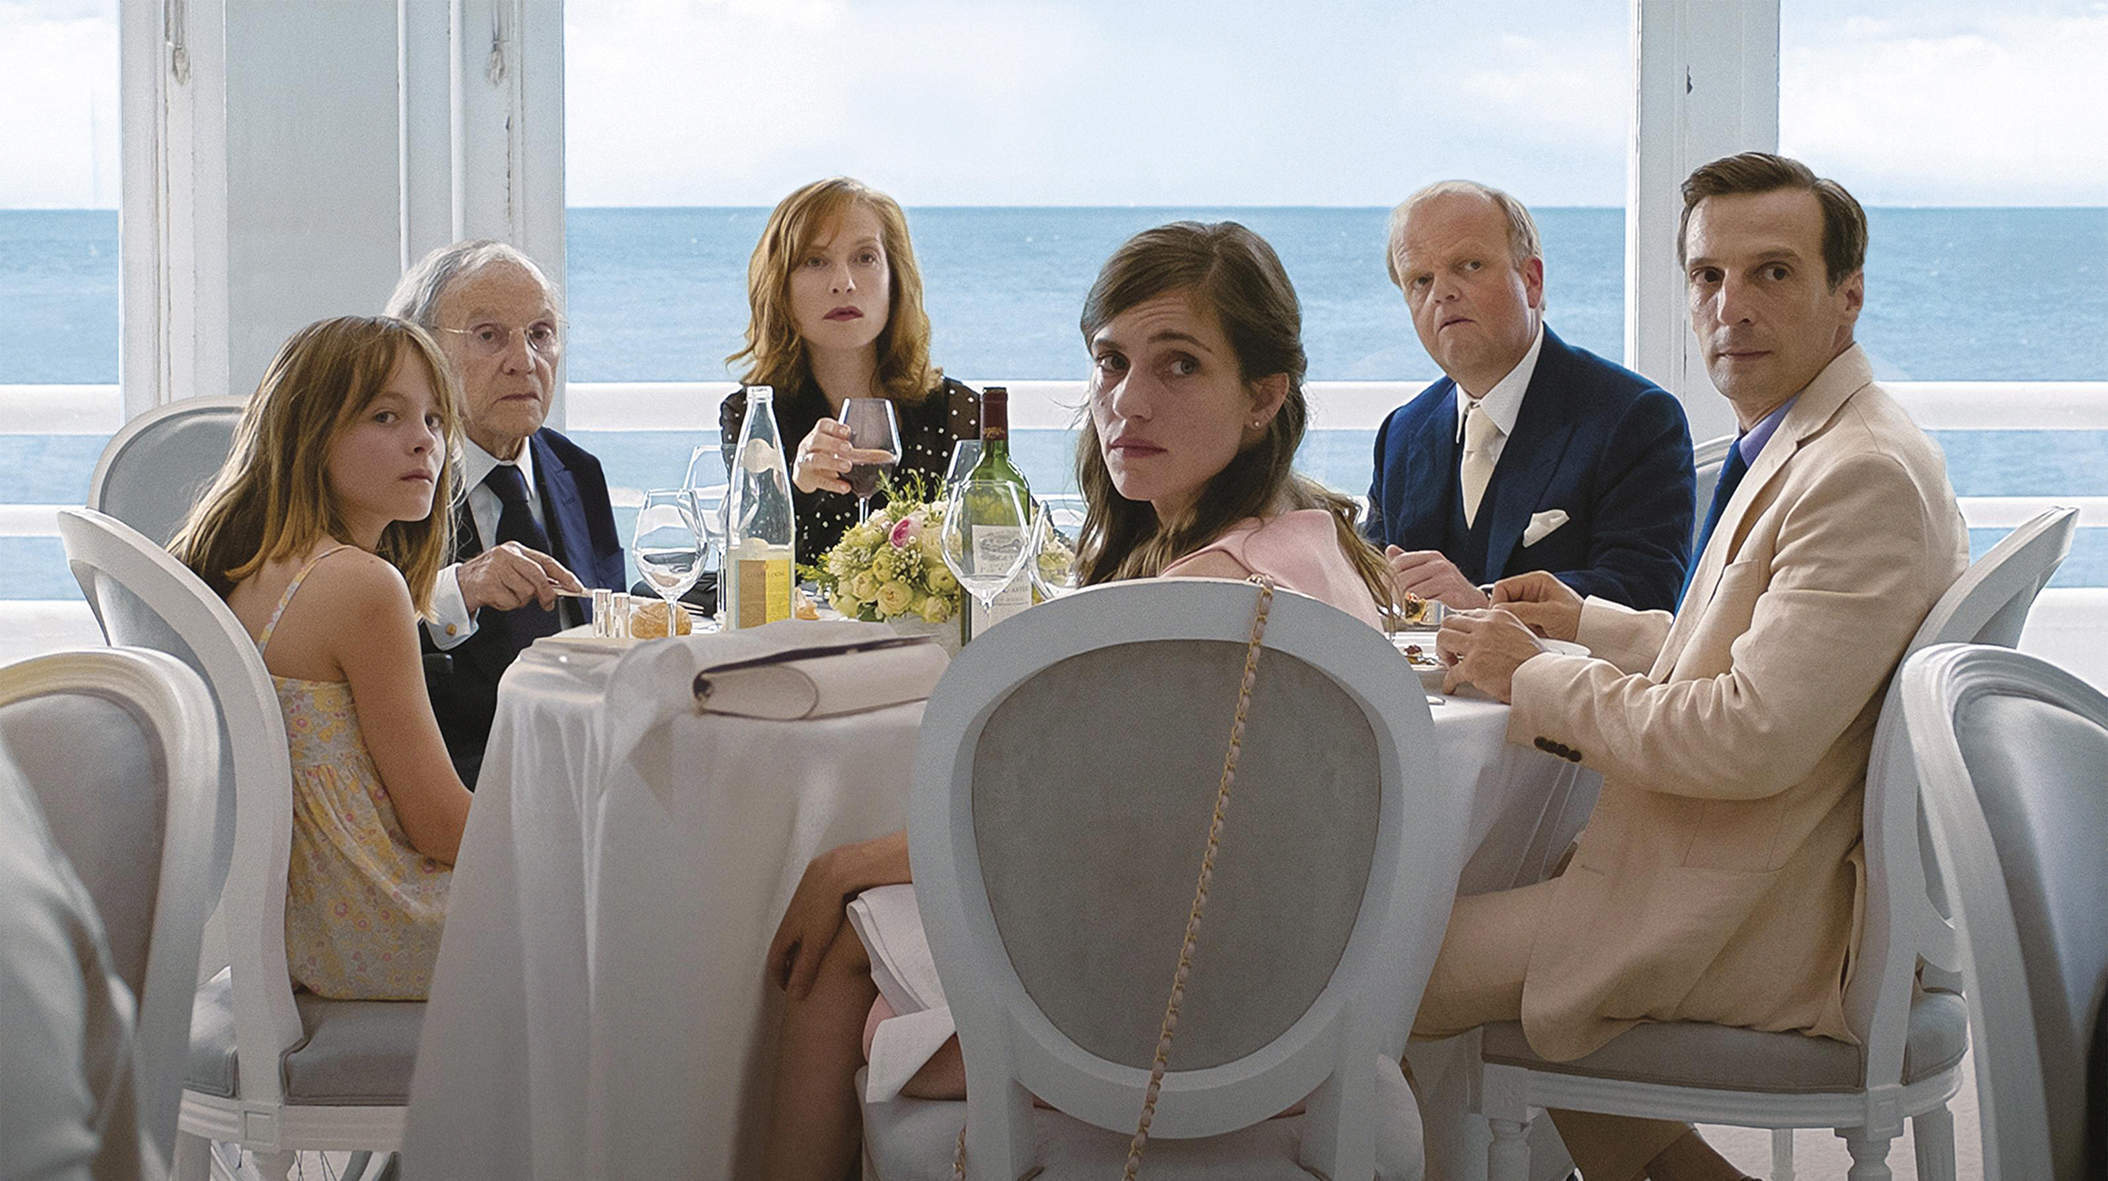 Happy End exposes the areas where class, race, economics and morality intersect